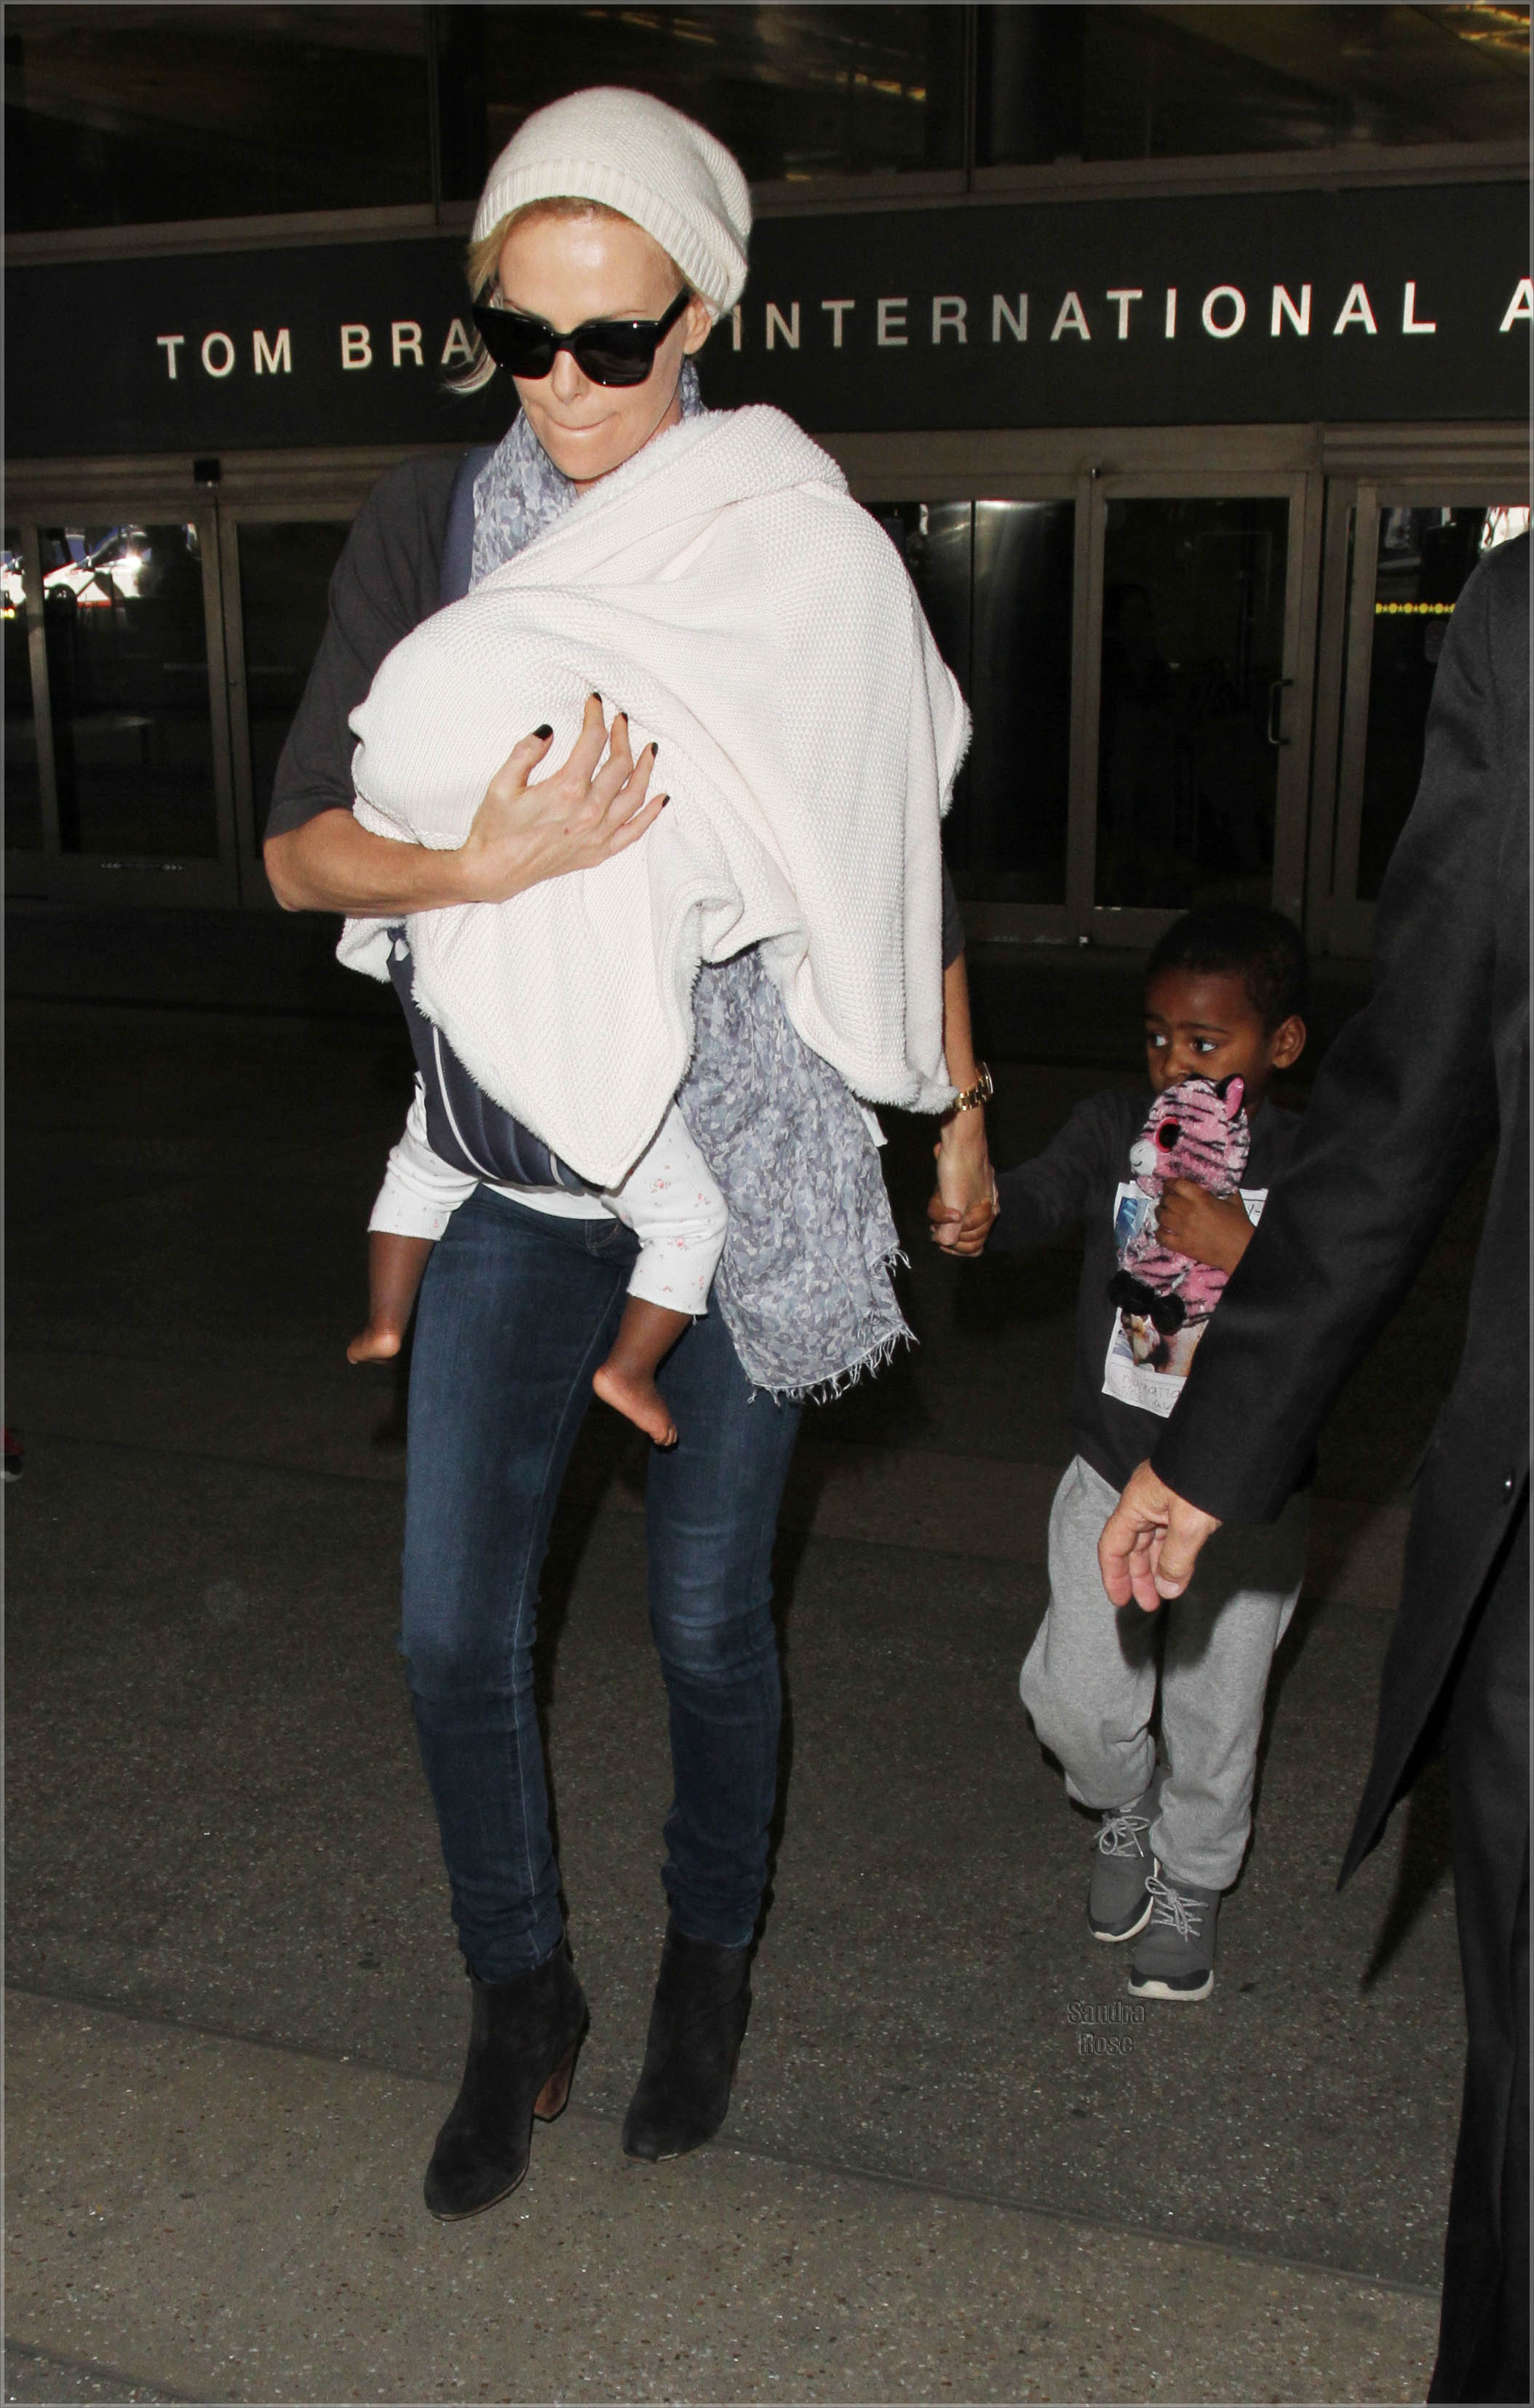 Charlize Theron arrives on a flight to Los Angeles International Airport